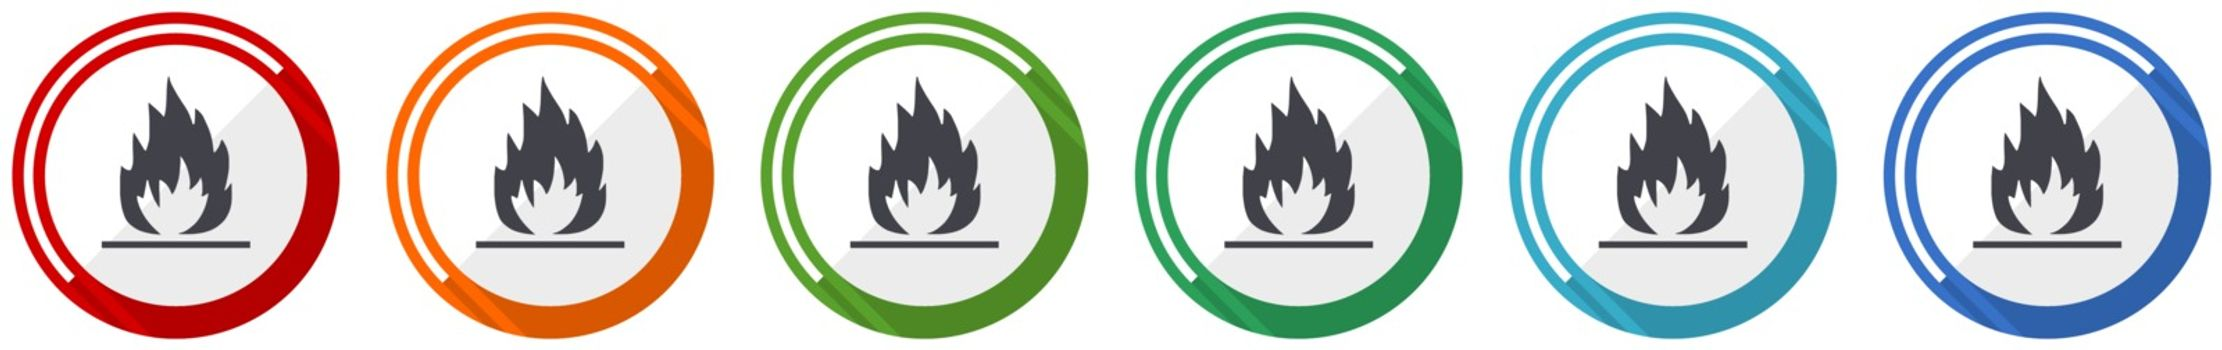 Flame icon set, flat design vector illustration in 6 colors options for webdesign and mobile applications